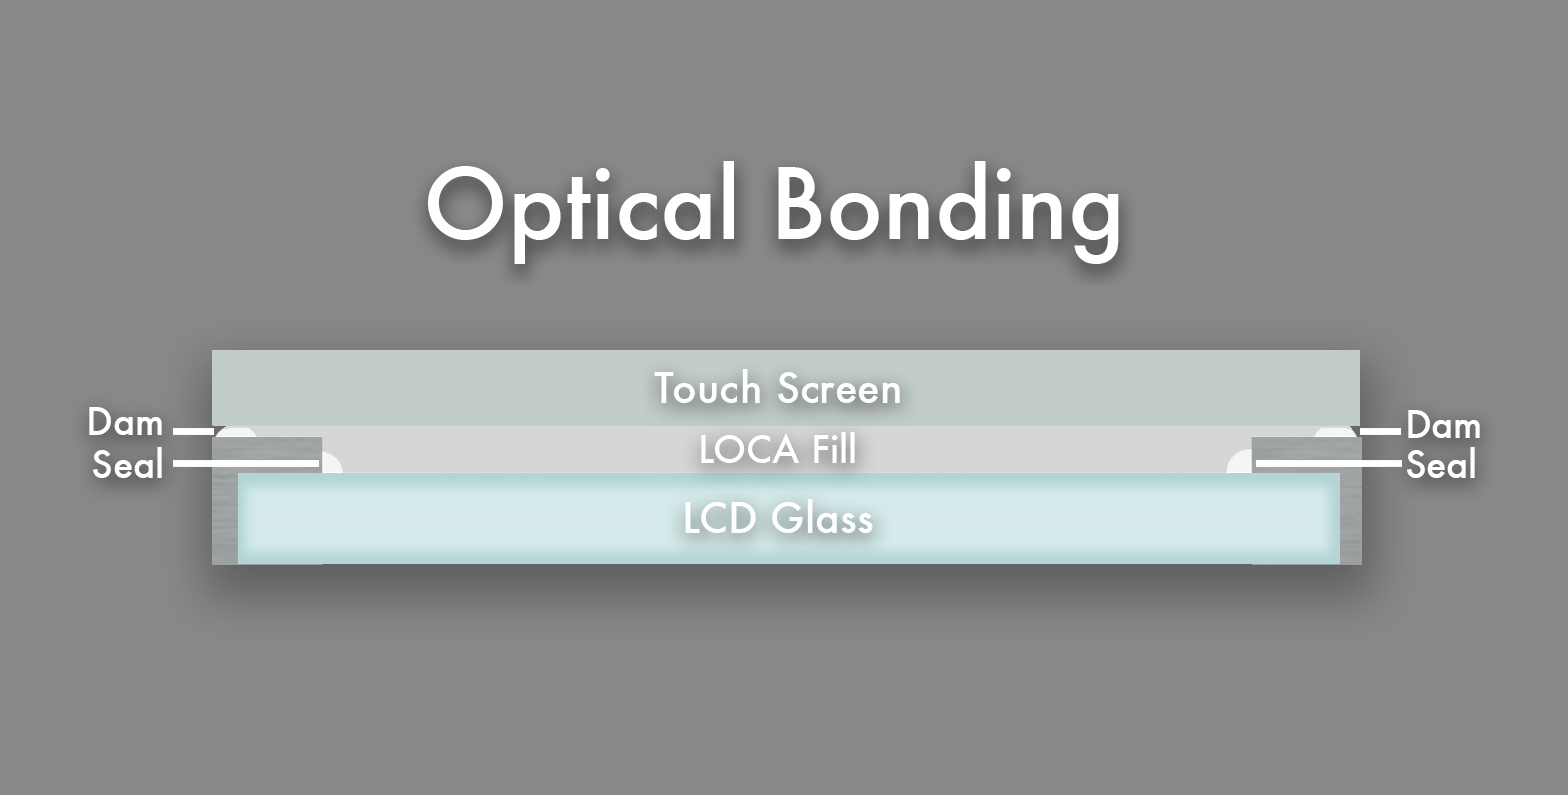 Optical Bonding Dawar Technologies Touch Screen With Eeti Controller Buy Resistive Screentouch Image Of Dam Uv Cured Acrylate Material Is Dispensed Around The Perimeter To Control Gap Between Lcd And